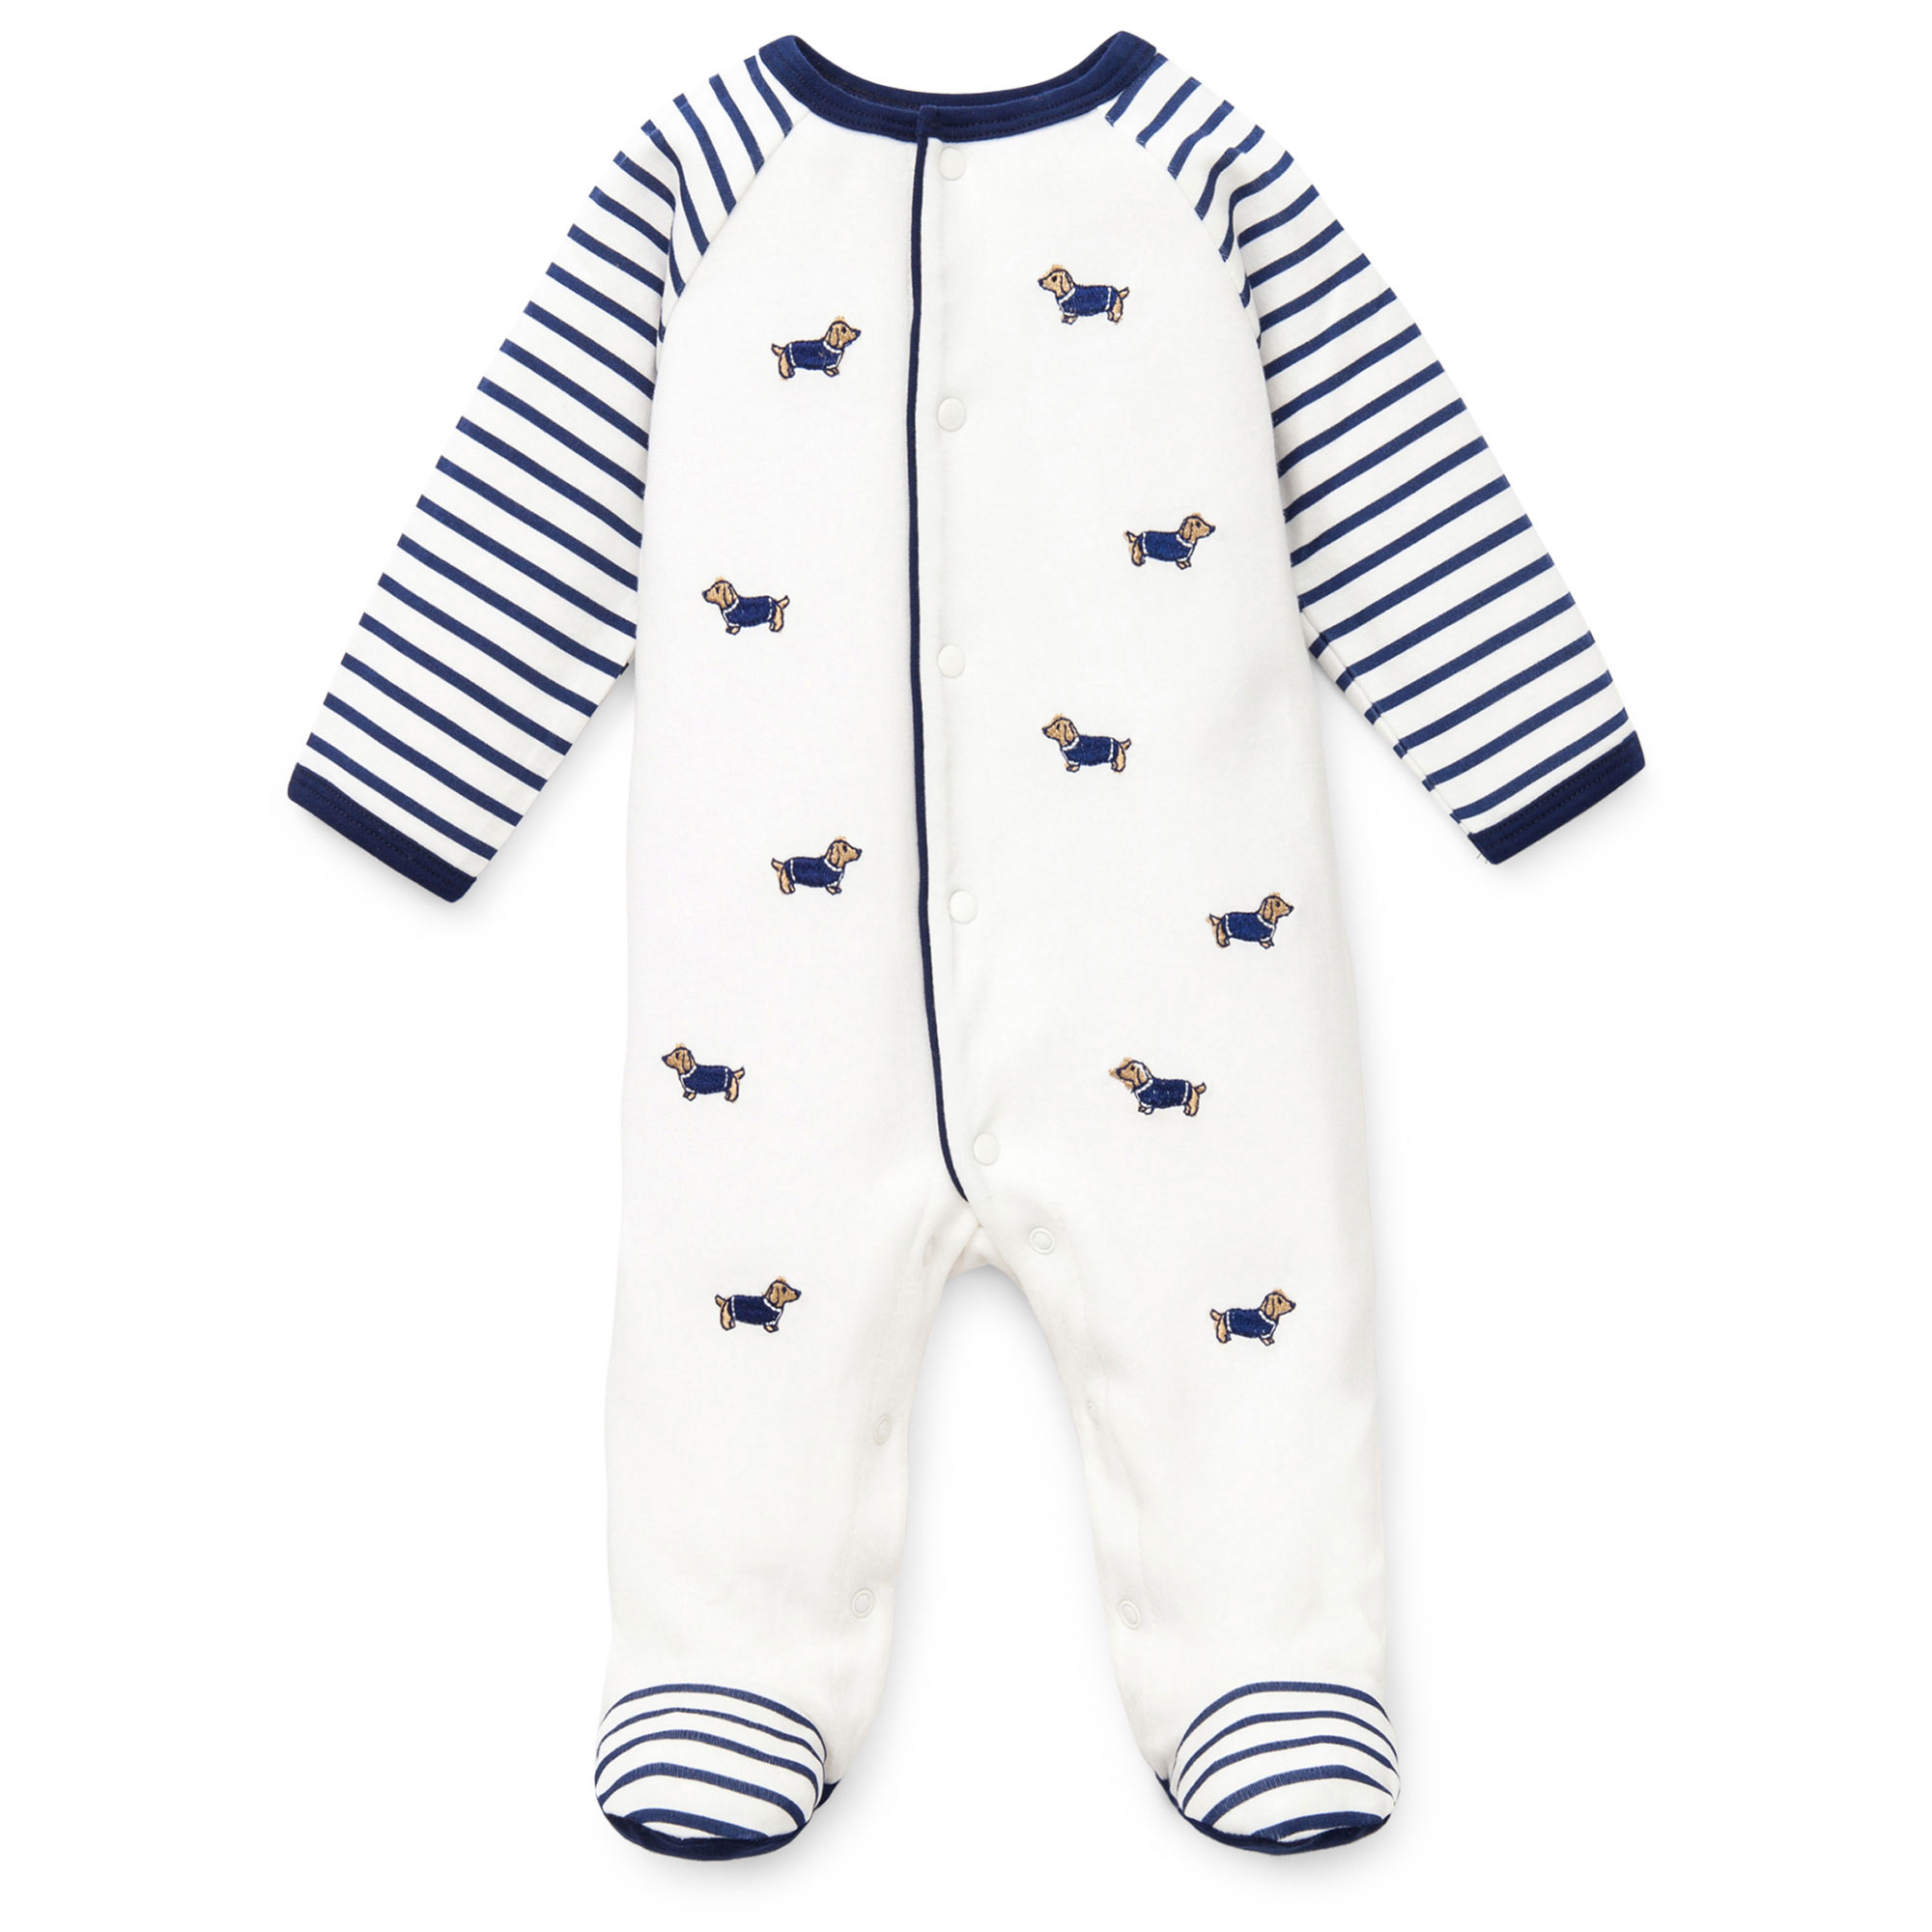 0602472e21 Little Me Dachshund Dog Snap Front Footie Pajamas For Baby Boys Sleep N  Play One Piece Romper Coverall Infant Footed Sleeper  Pijamas Para Bebes -  White ...